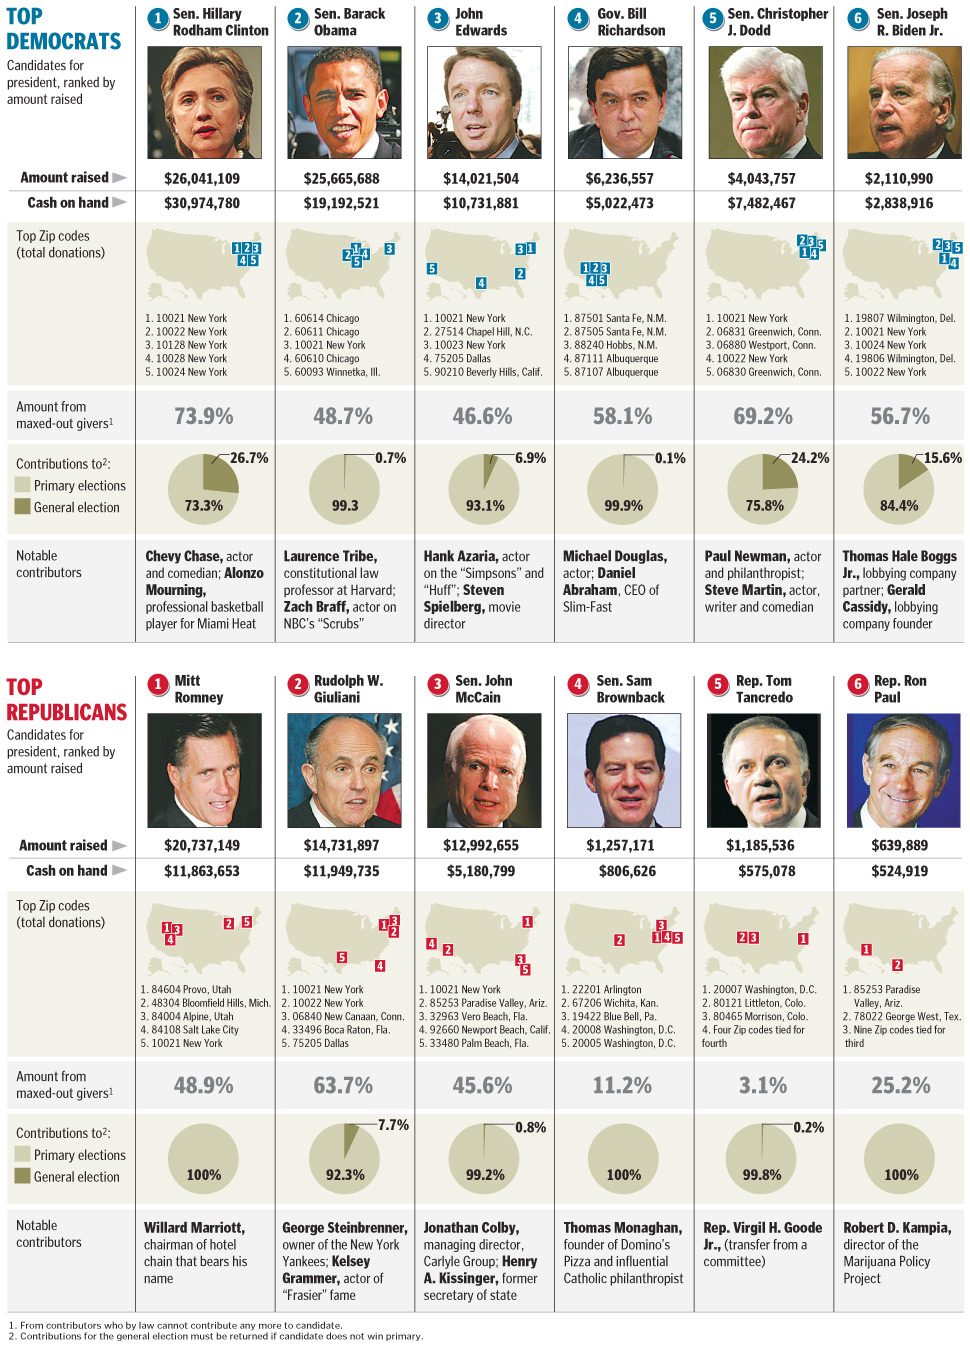 Top Presidential Contributions 1Q